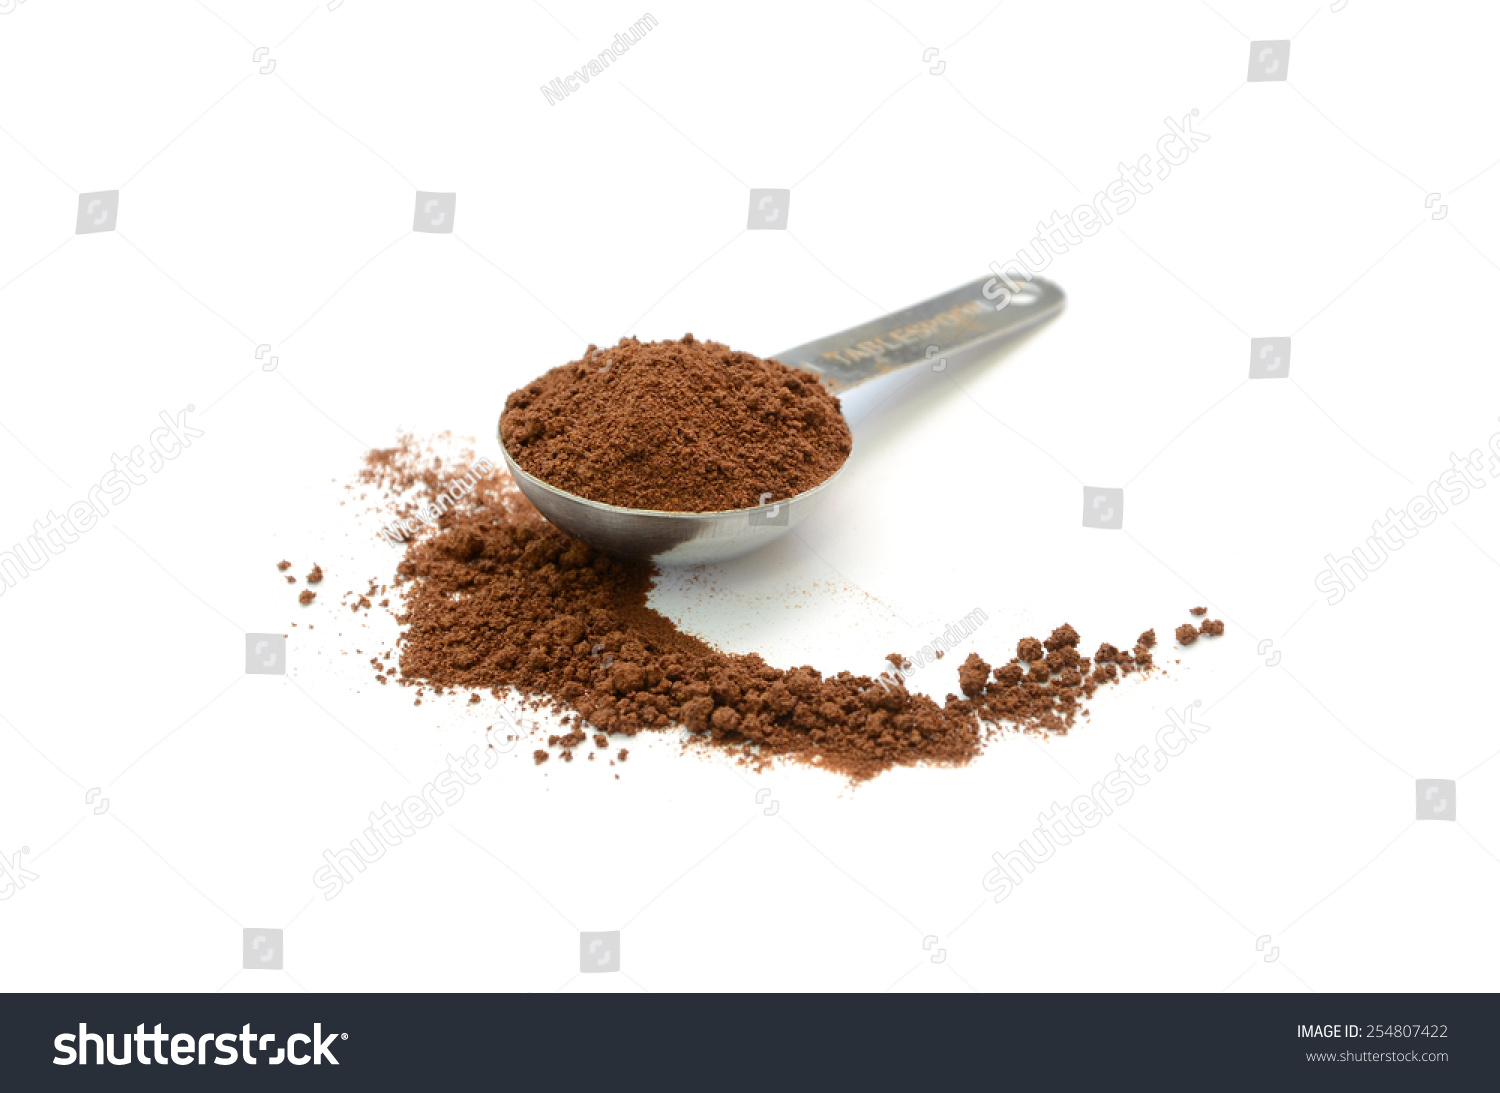 ground coffee stock photo - photo #38